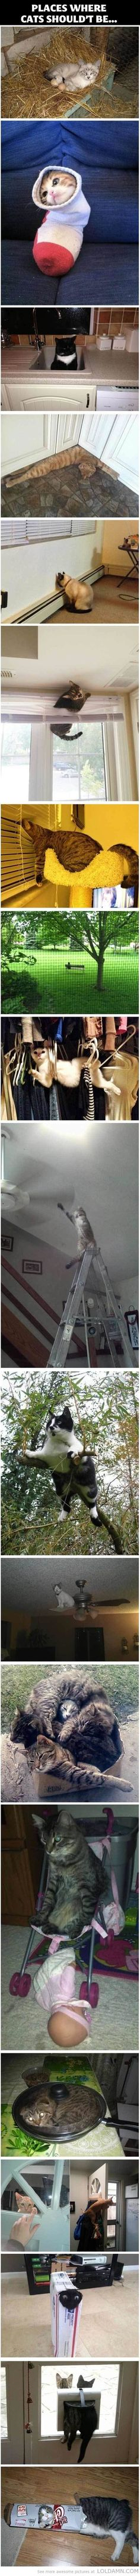 Places Where Cats Shouldnt Be